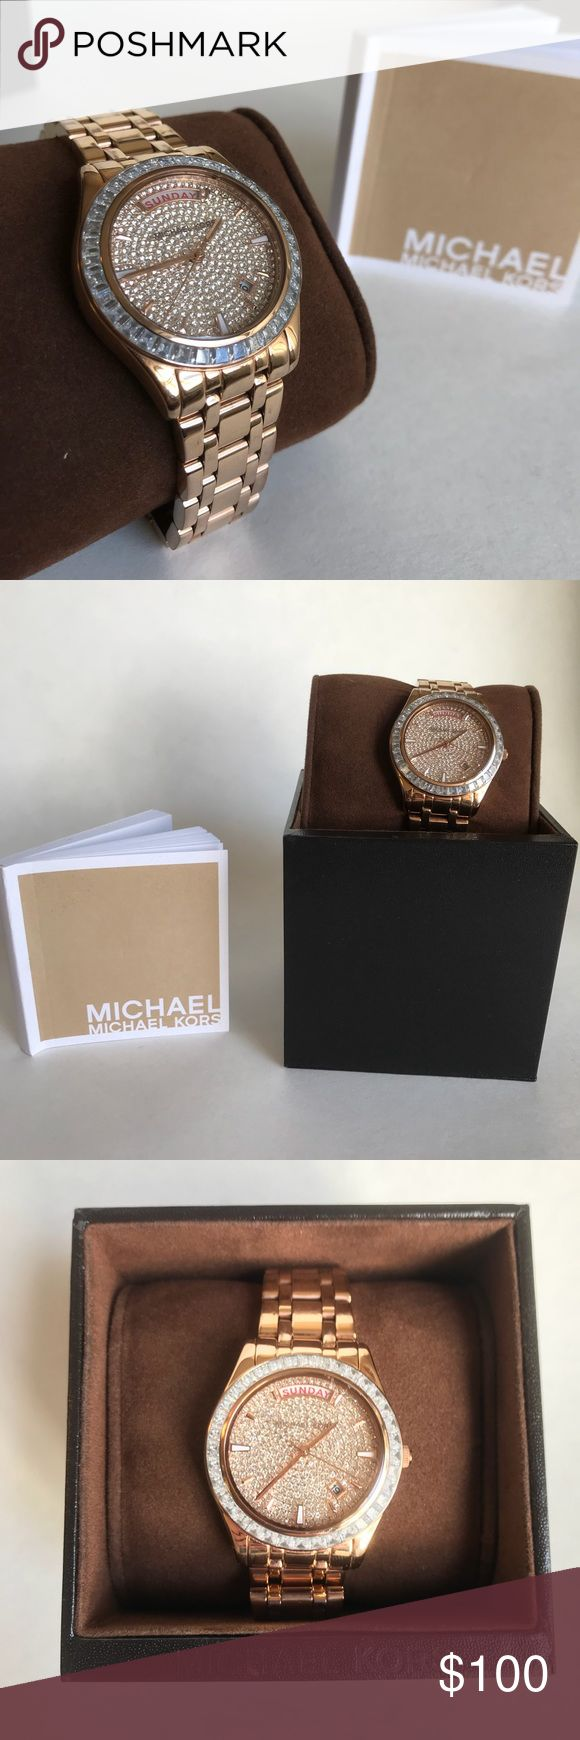 Michael Kors Rosegold Diamond Watch Michael Kors diamond rose gold watch. Like-new condition. Worn quite a bit, but very well taken care of. Has the day, date window, and ability to remove and add links to the chain. Comes with original box. KORS Michael Kors Accessories Watches